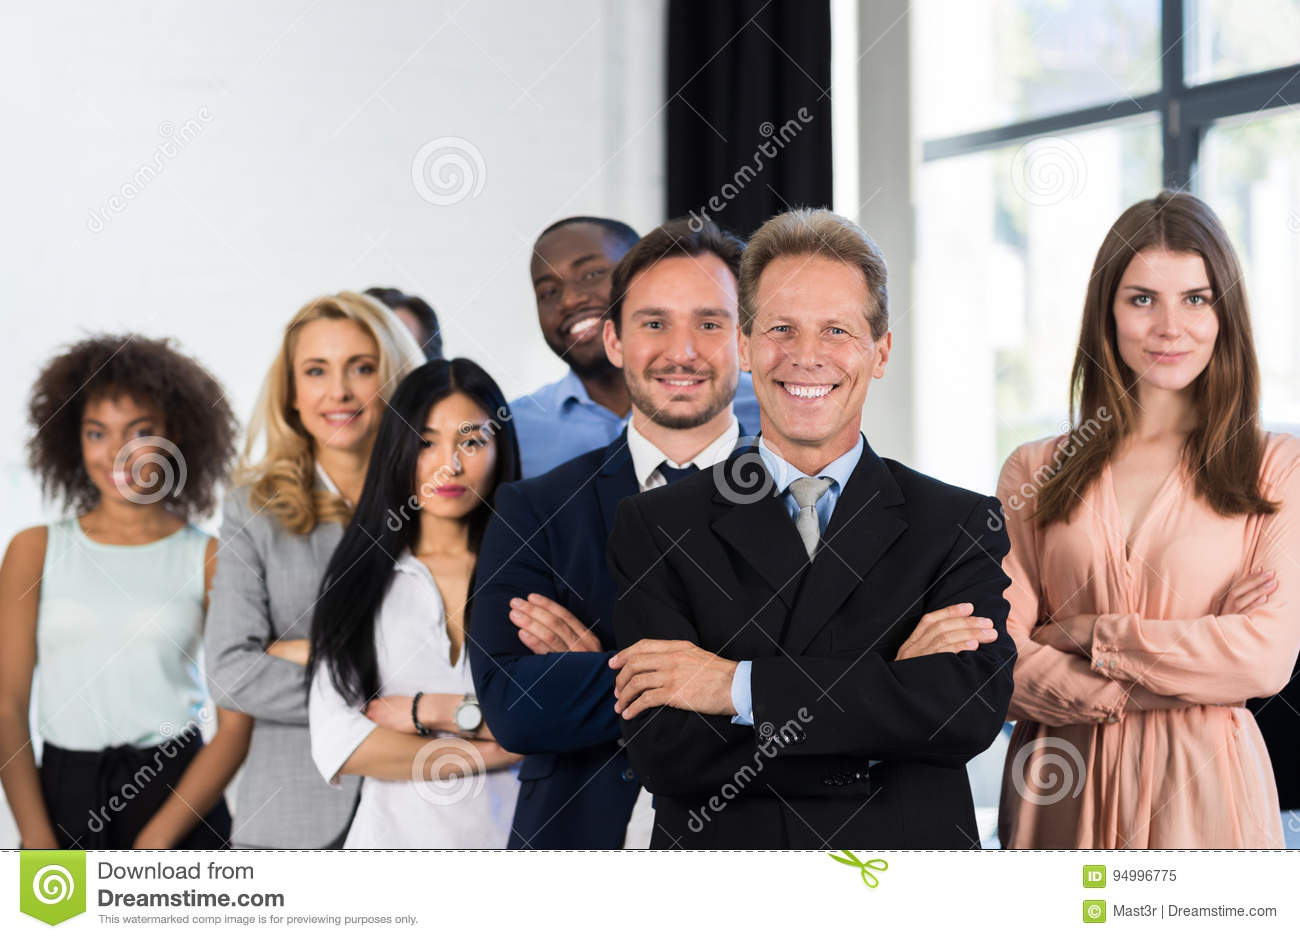 Boss With Group Of Businesspeople In Creative Office, Mature Successful Businessman Leading Business People Team Stand